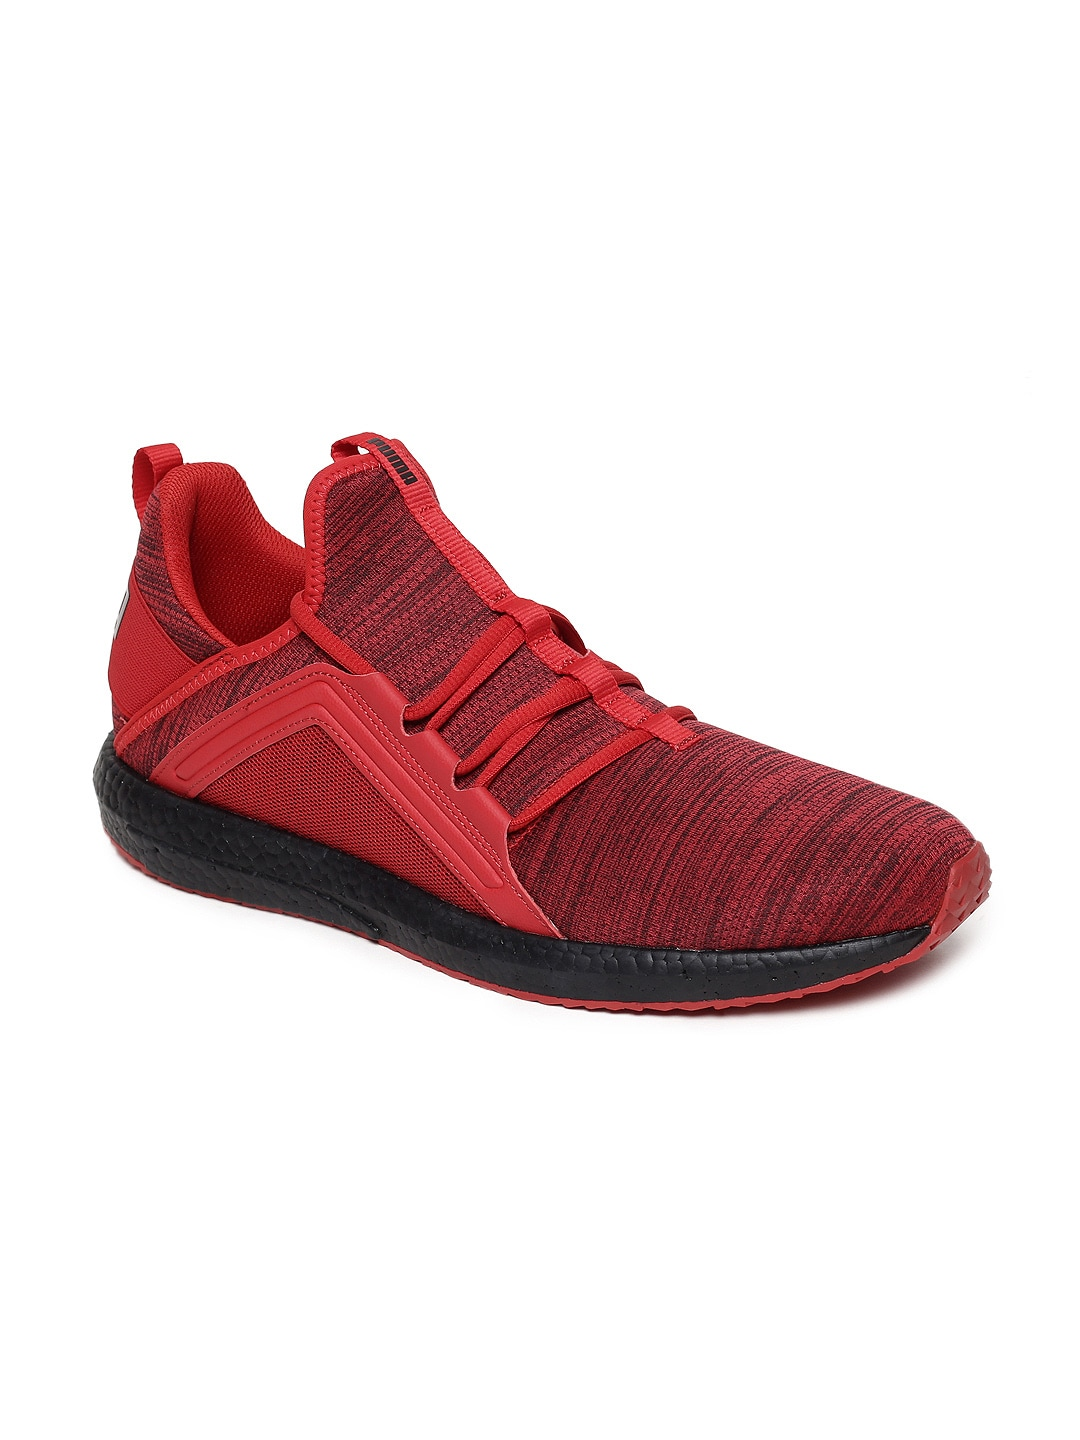 Puma Red Shoes - Buy Puma Red Shoes Online in India 35da00027